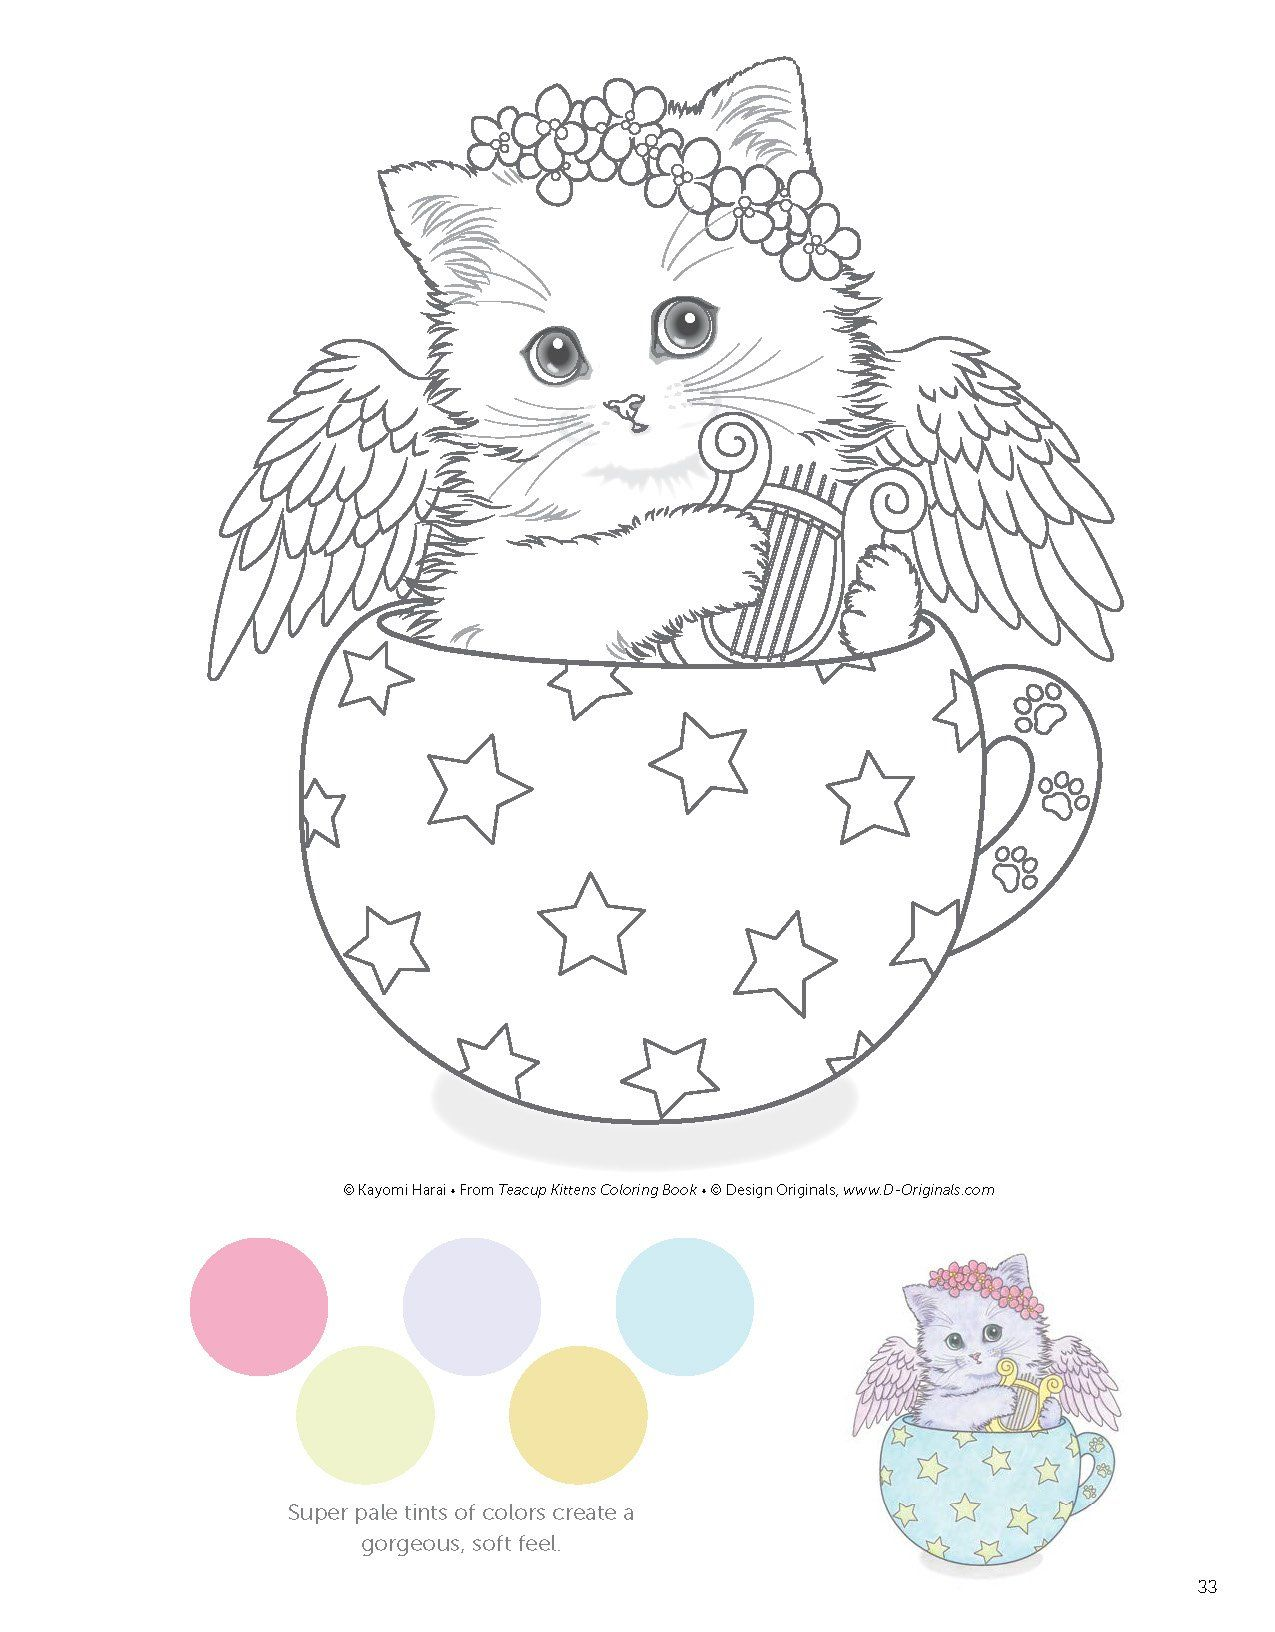 Ausmalbilder Katzen Babys : Teacup Kittens Coloring Book Kayomi Harai 9781497202269 Amazon